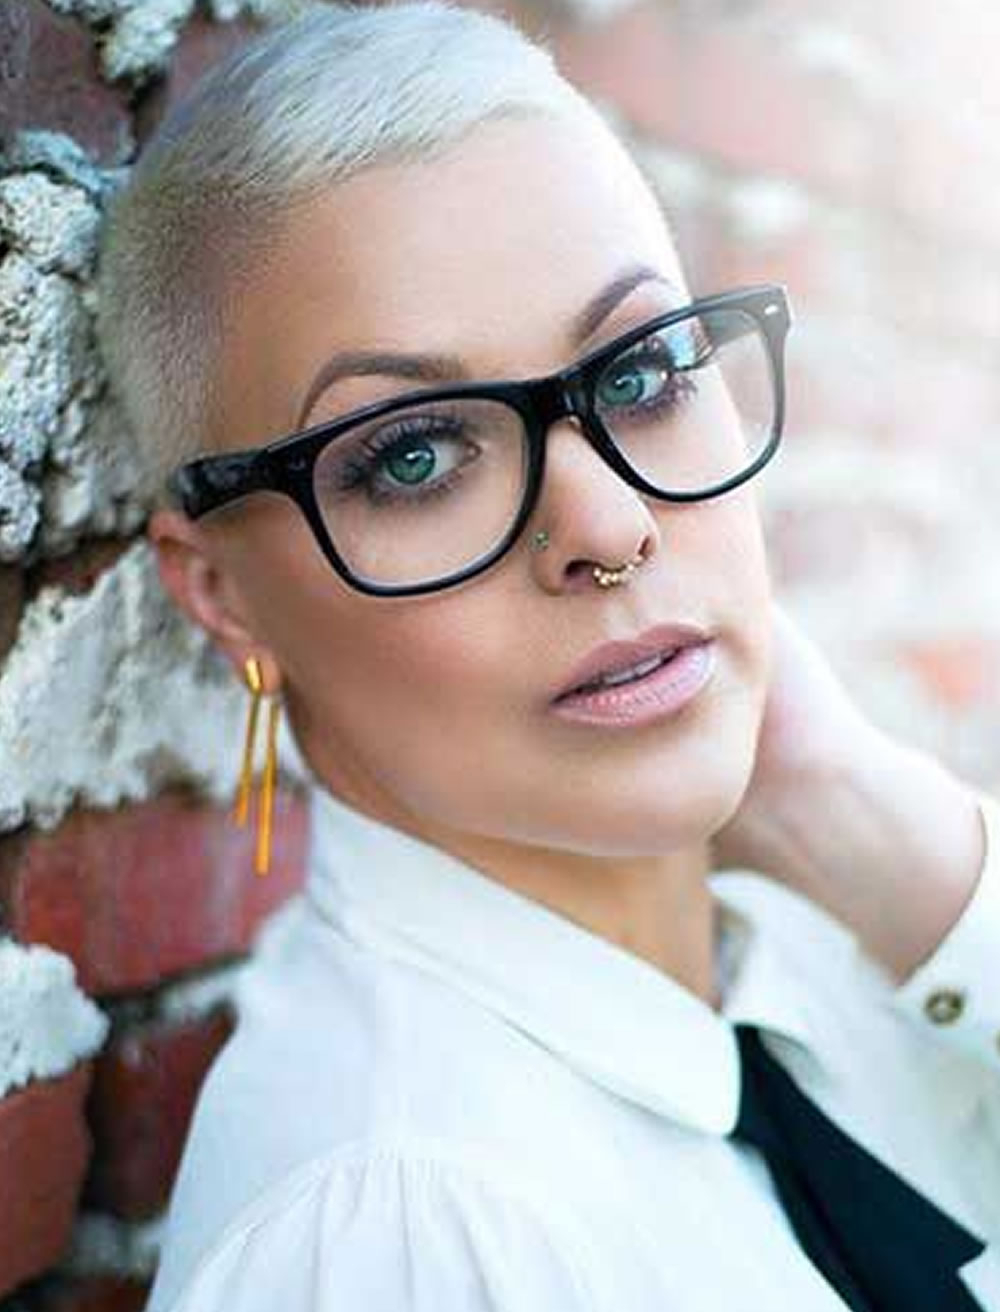 Short Grey Hair For Women With Glasses – Hairstyles Pertaining To Short Haircuts For Girls With Glasses (View 5 of 25)